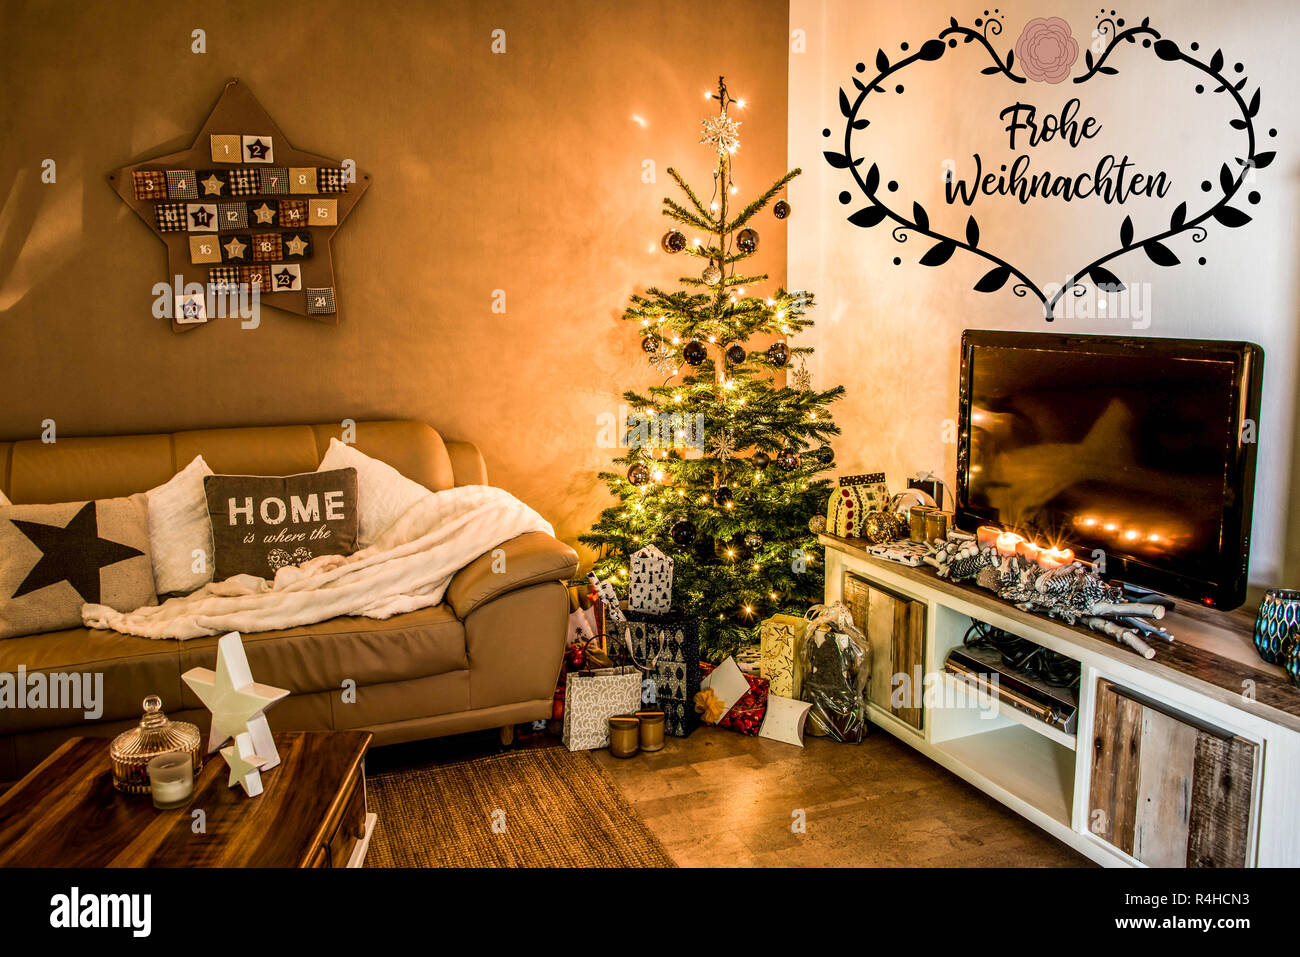 beautiful living rooms at christmas red and brown room decorating ideas merry tree setup aith gifts decorated for happy holidays home textspace saying in german